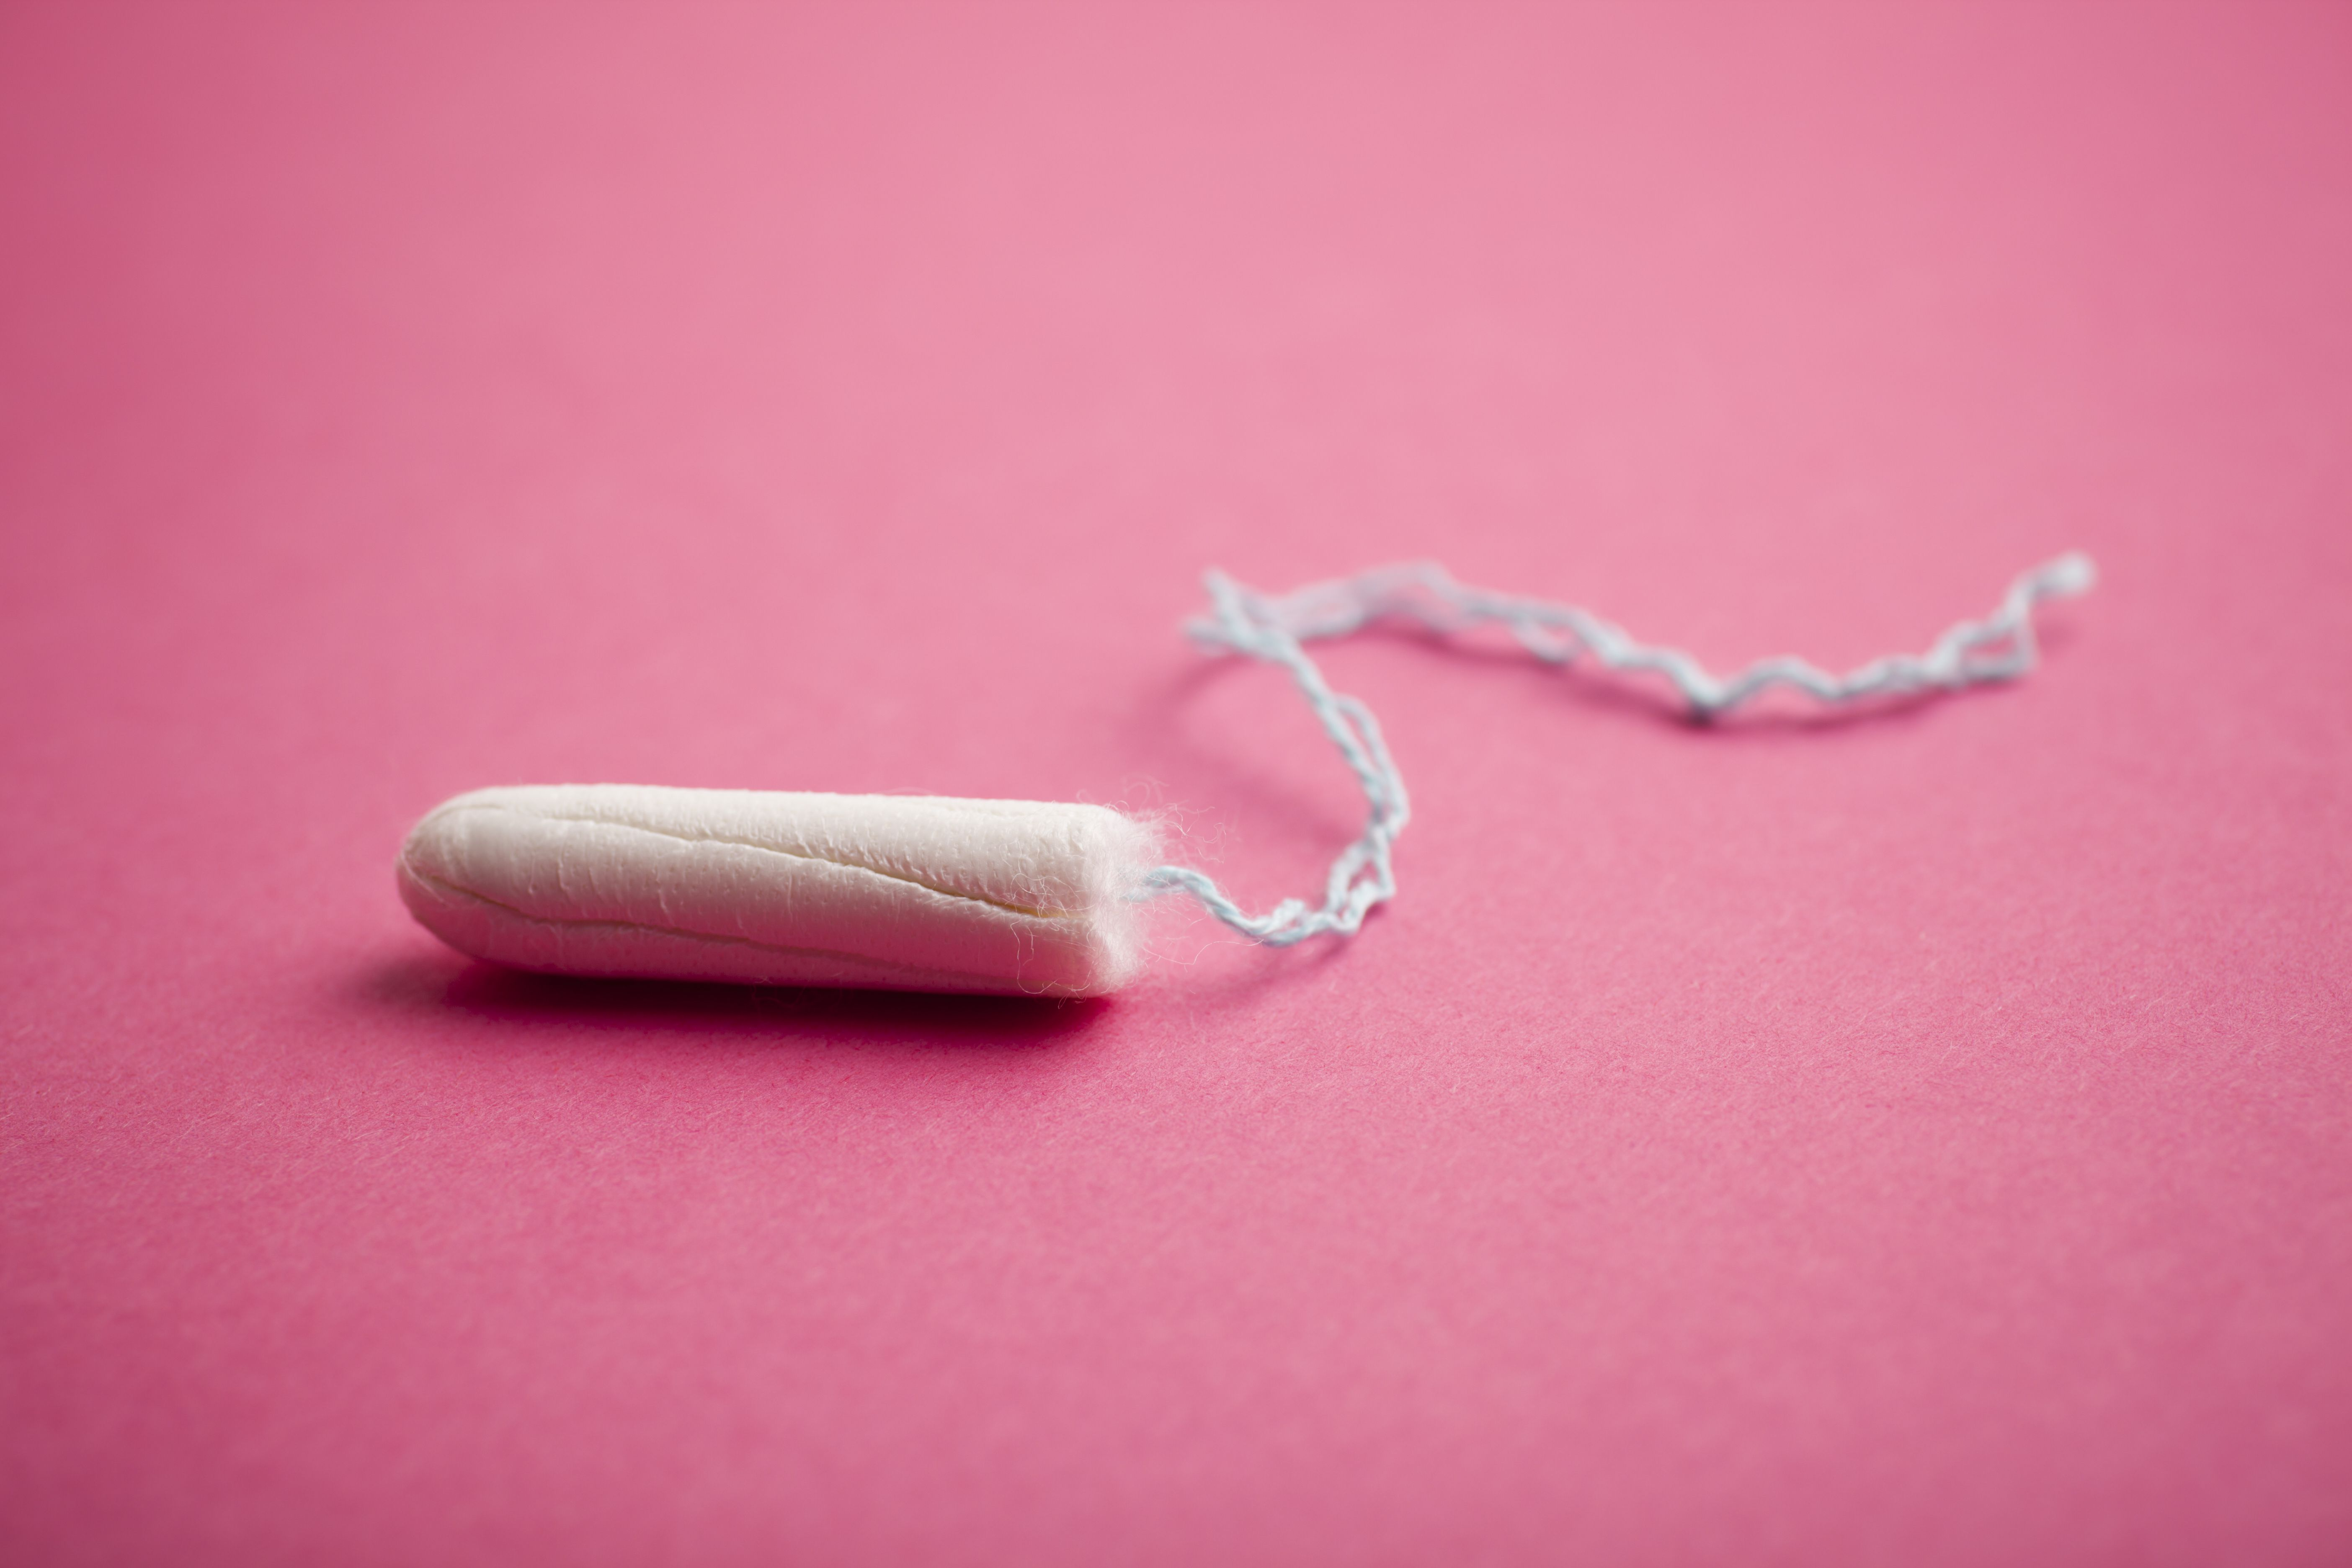 Can You Use Tampons After an Early Miscarriage?